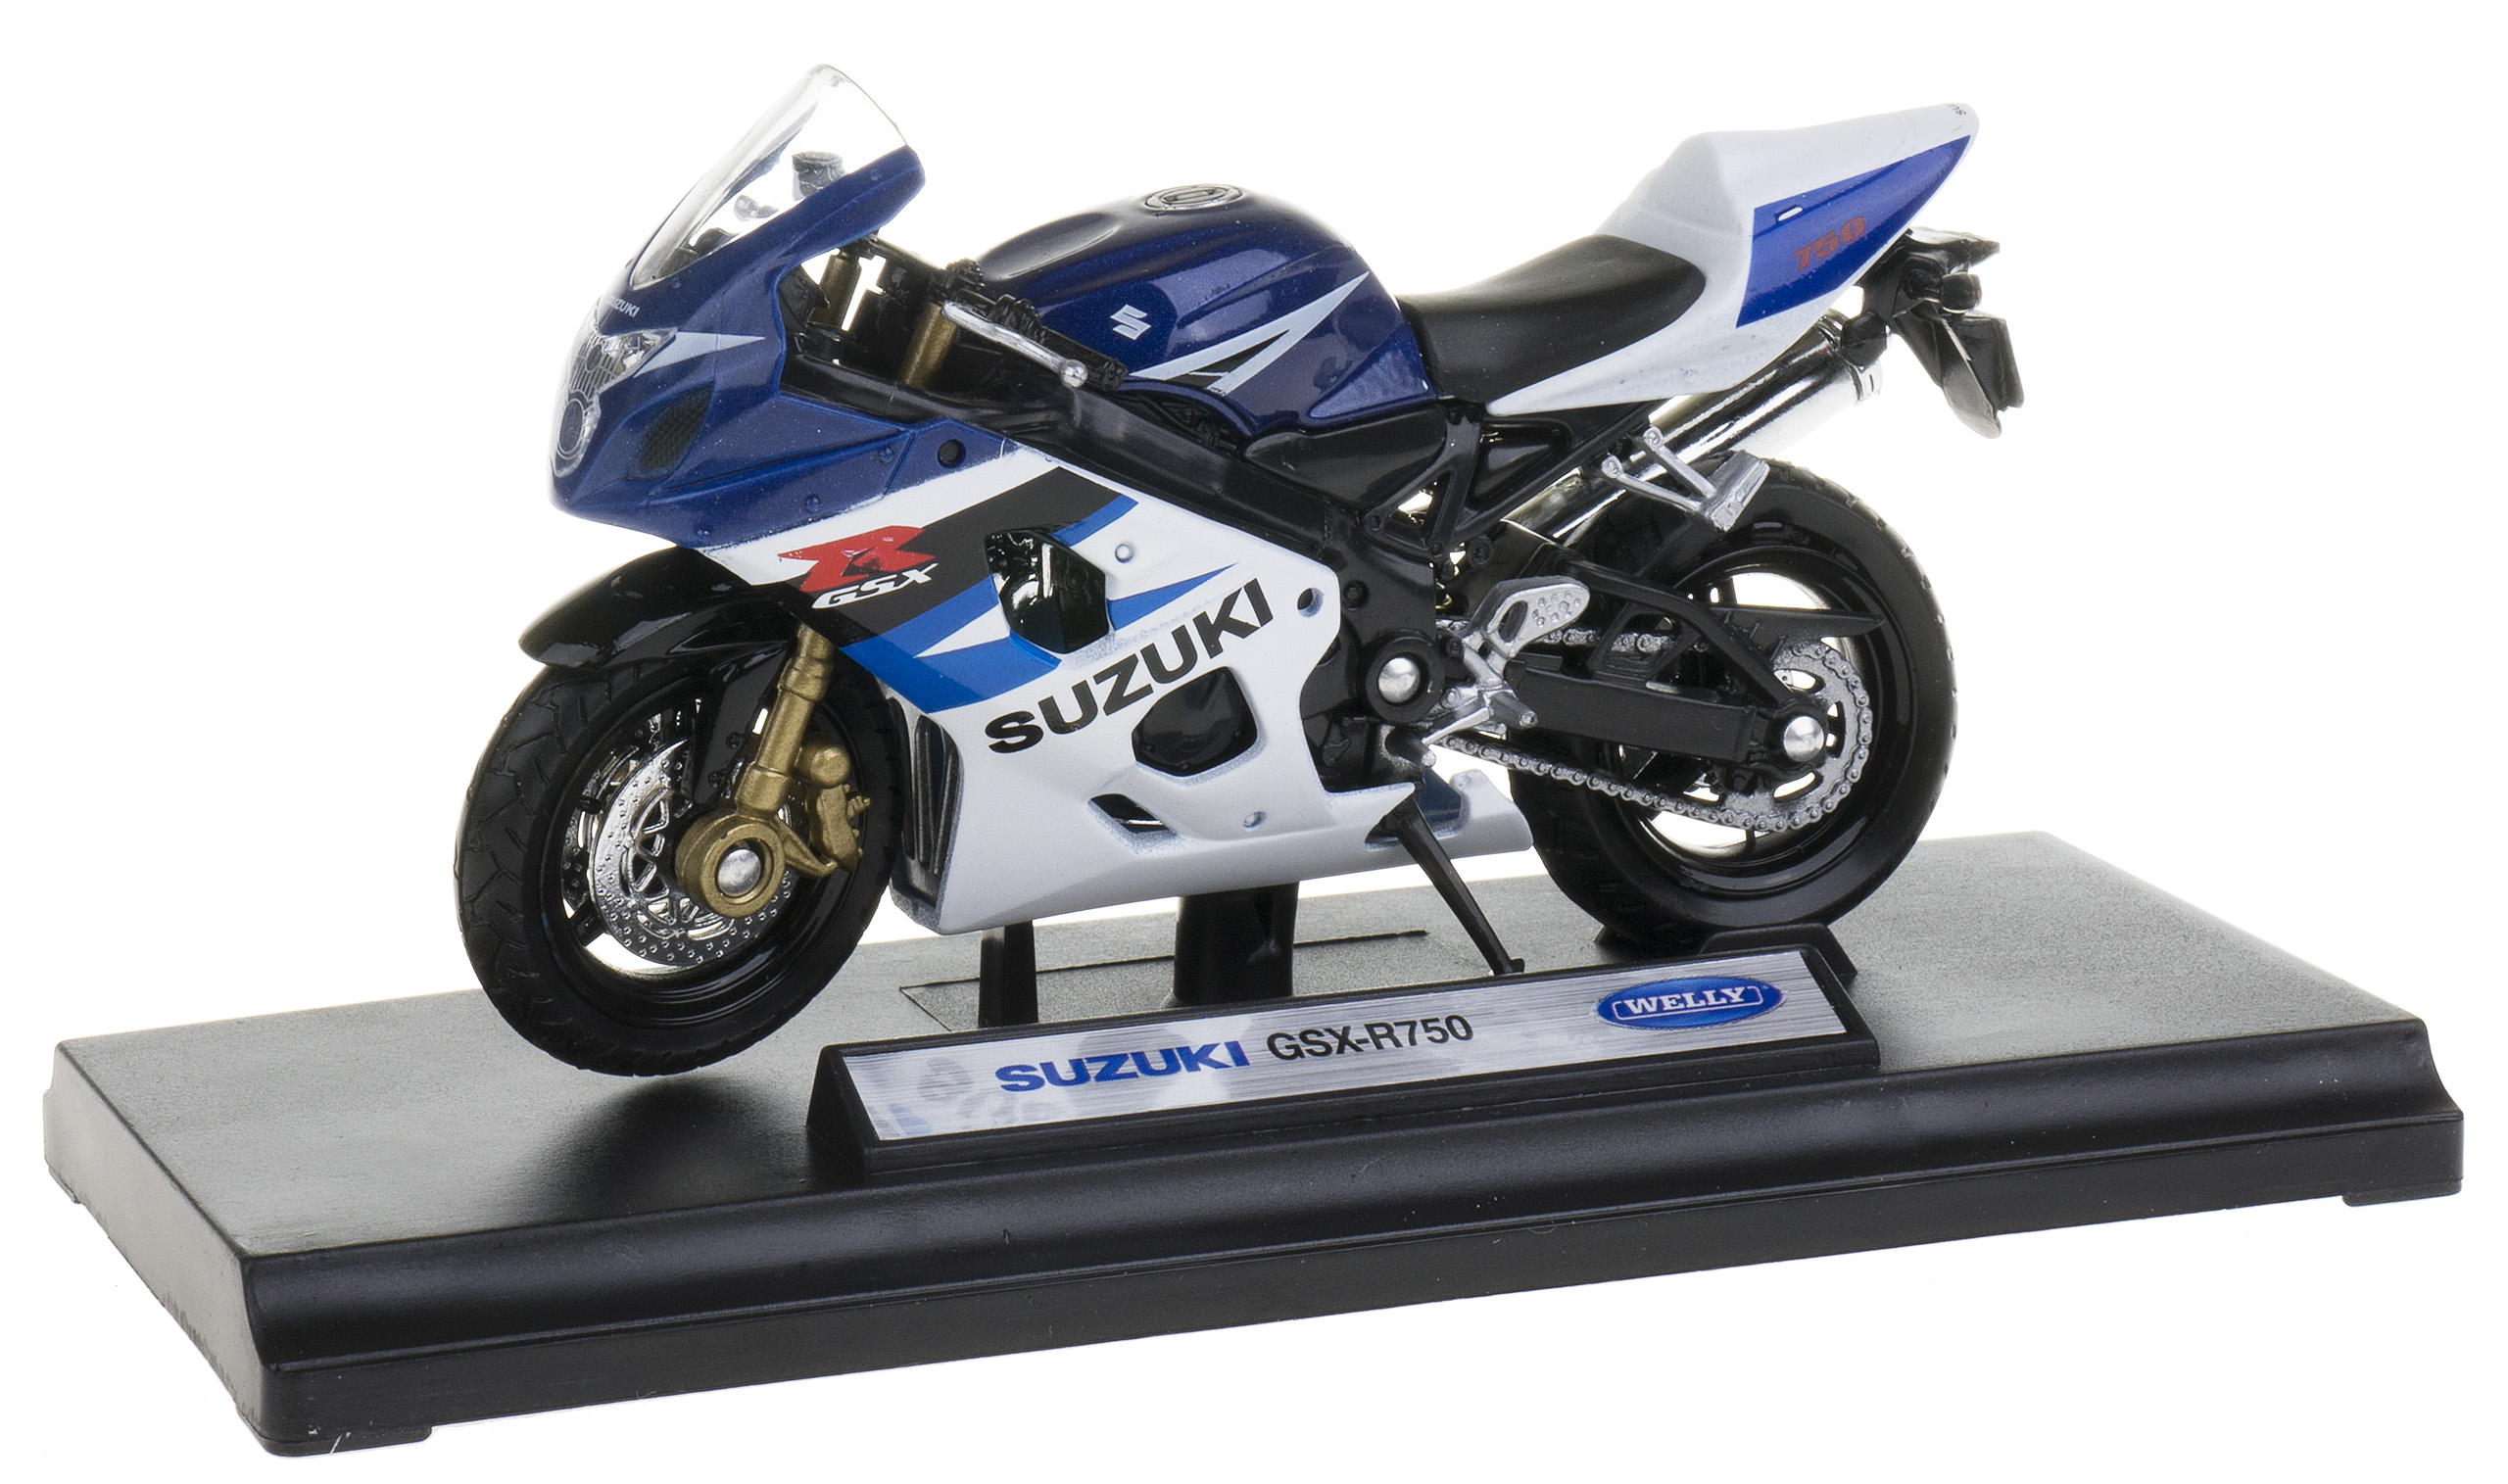 SUZUKI GSX-R750 MODEL METALOWY WELLY MOTOR 1:18